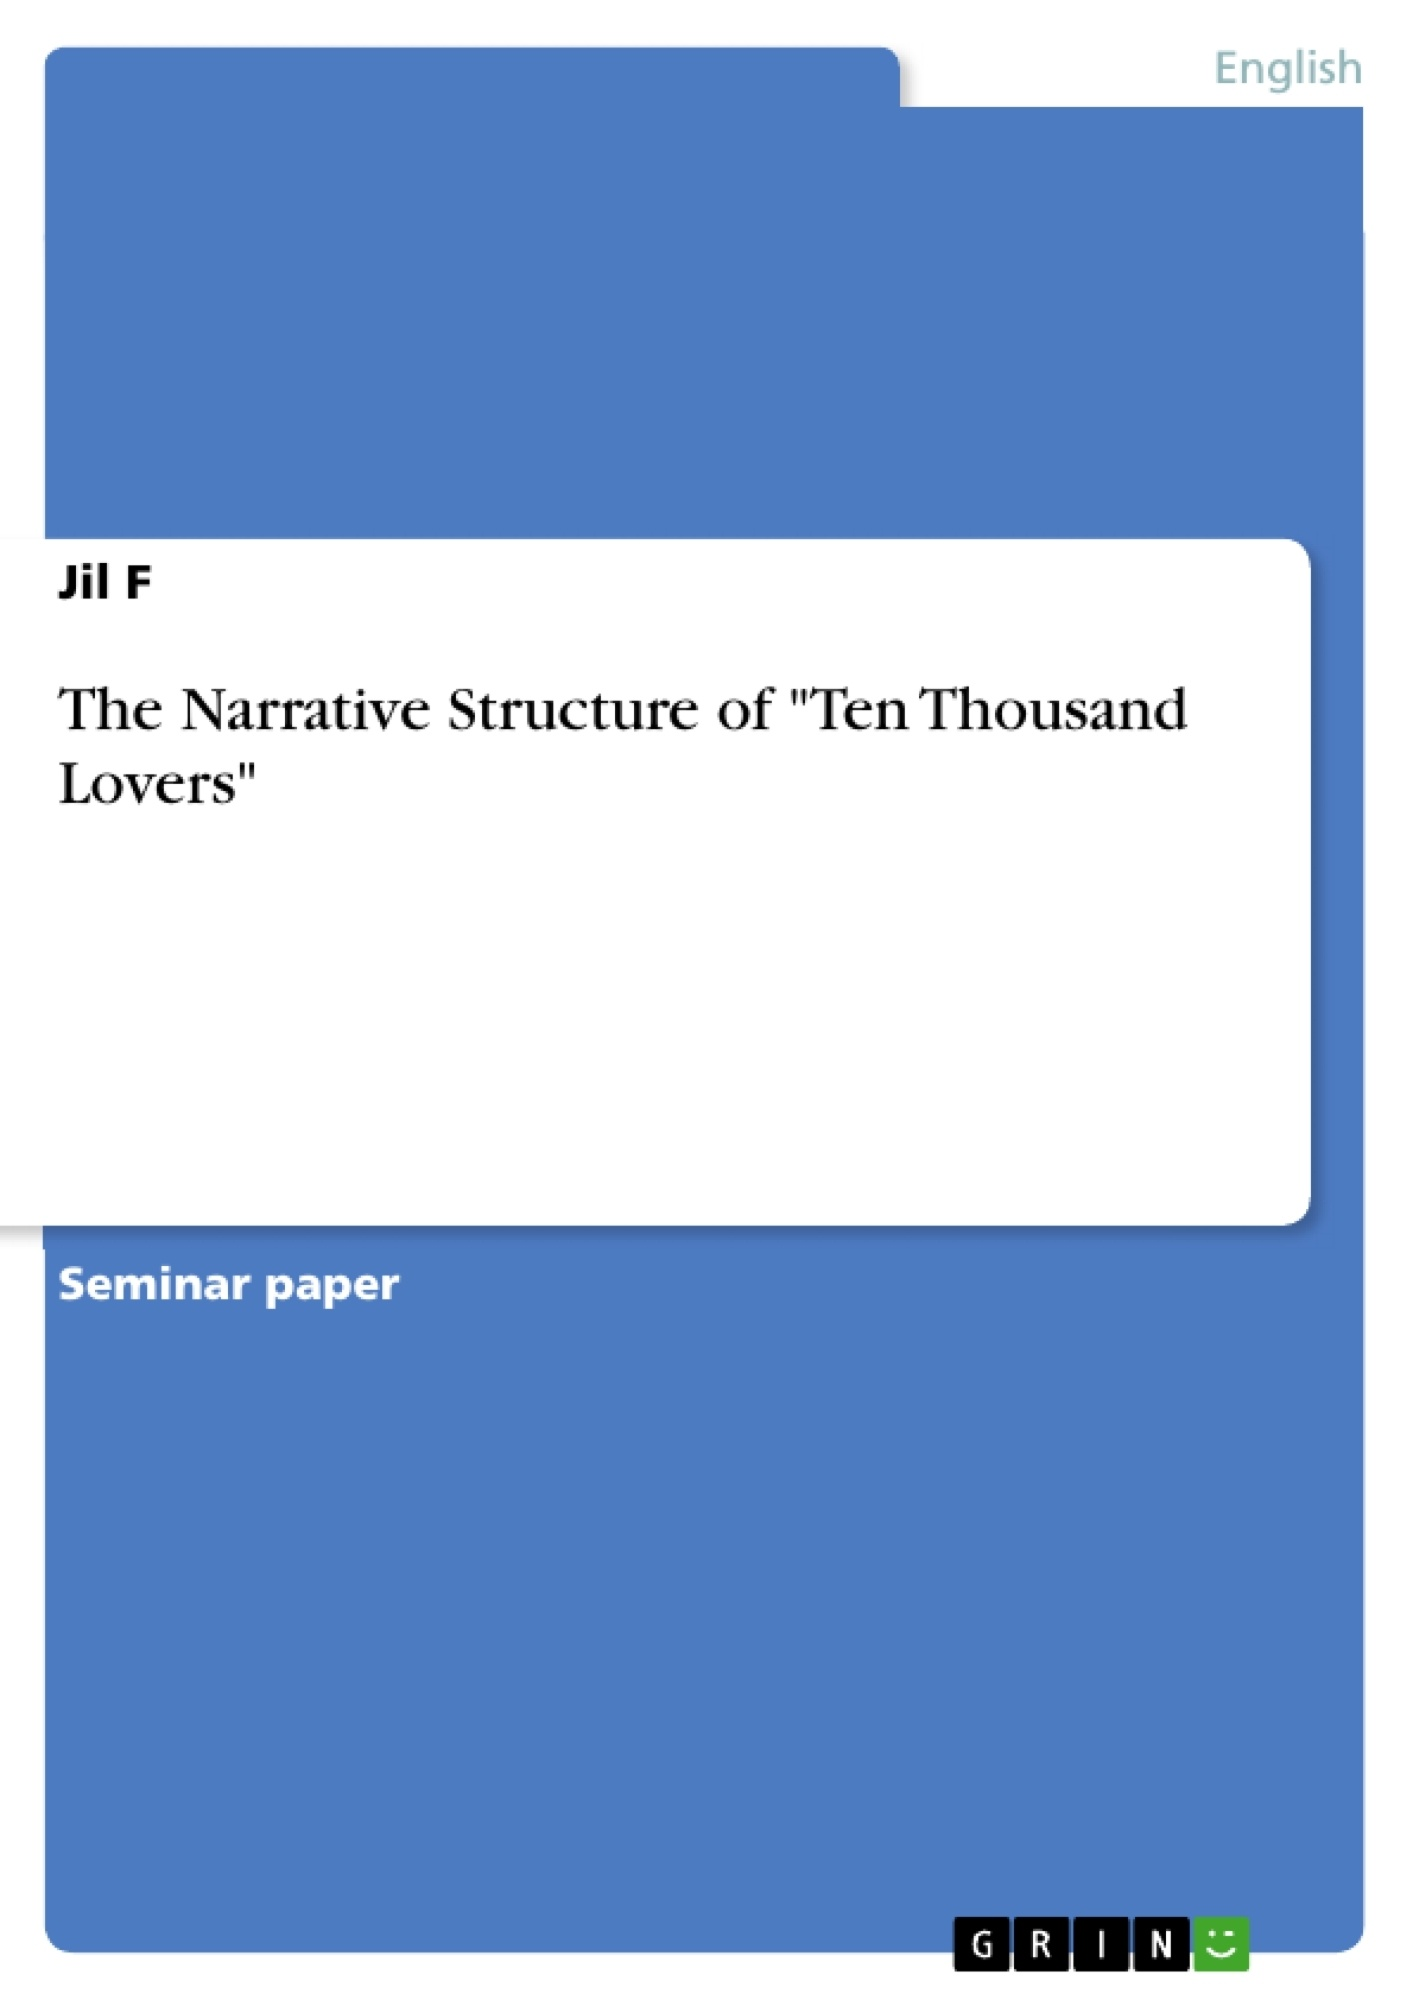 The novels Sons and Lovers by D. H. Lawrence